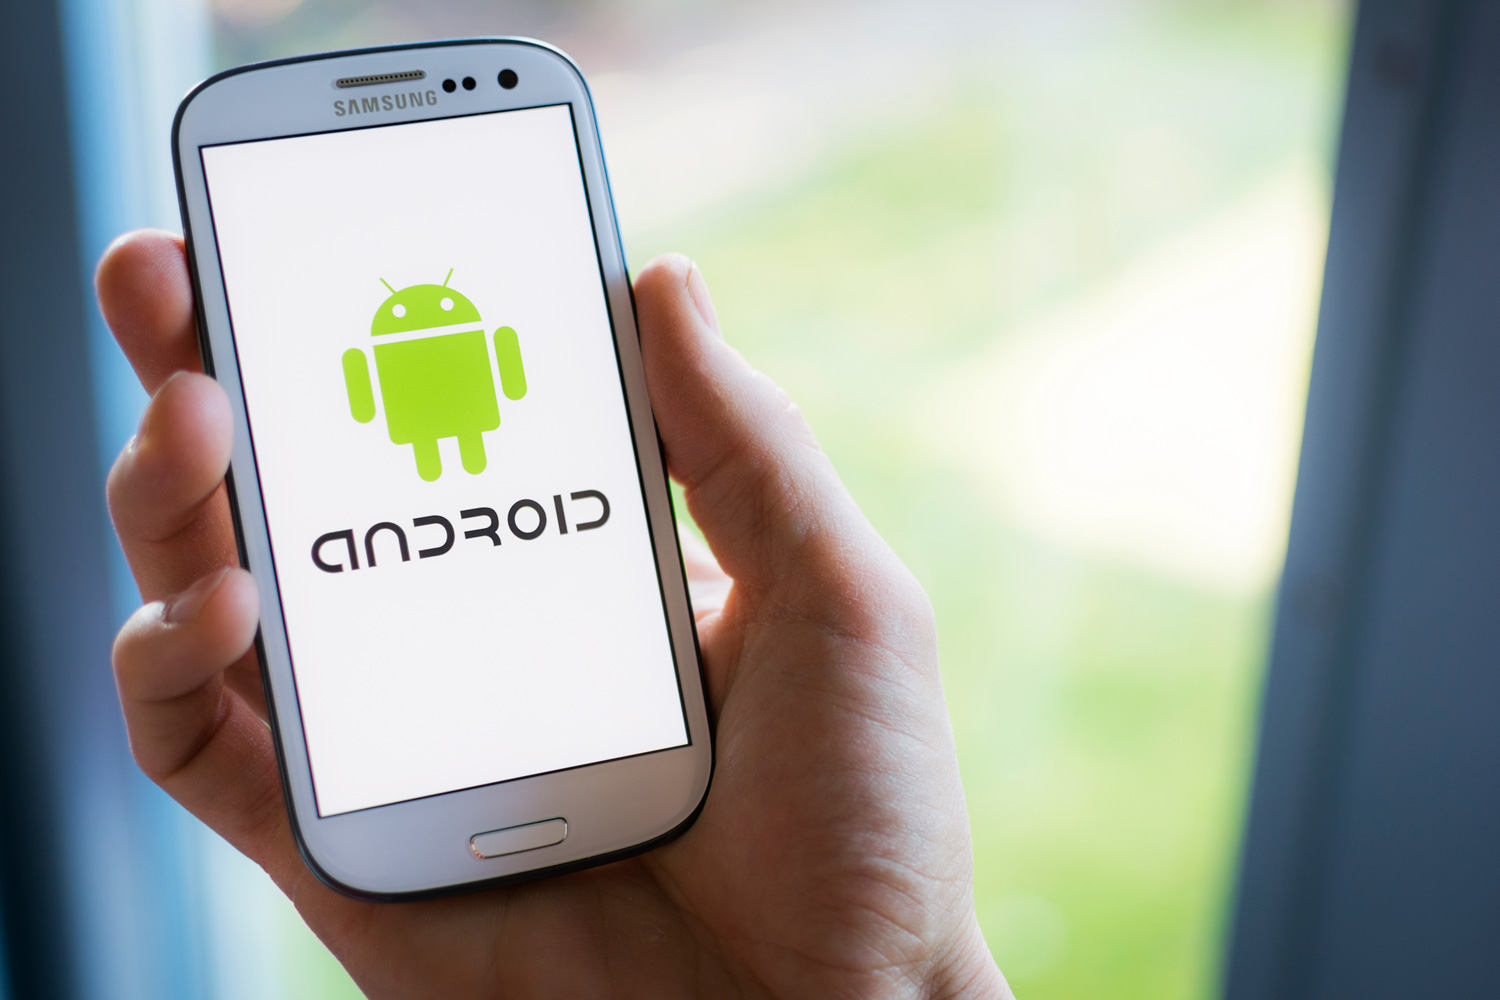 Phone App Store For Rooted Android Phones google removes 13 malware infested apps from play store digital purges android phone smartphone smart generic symbol